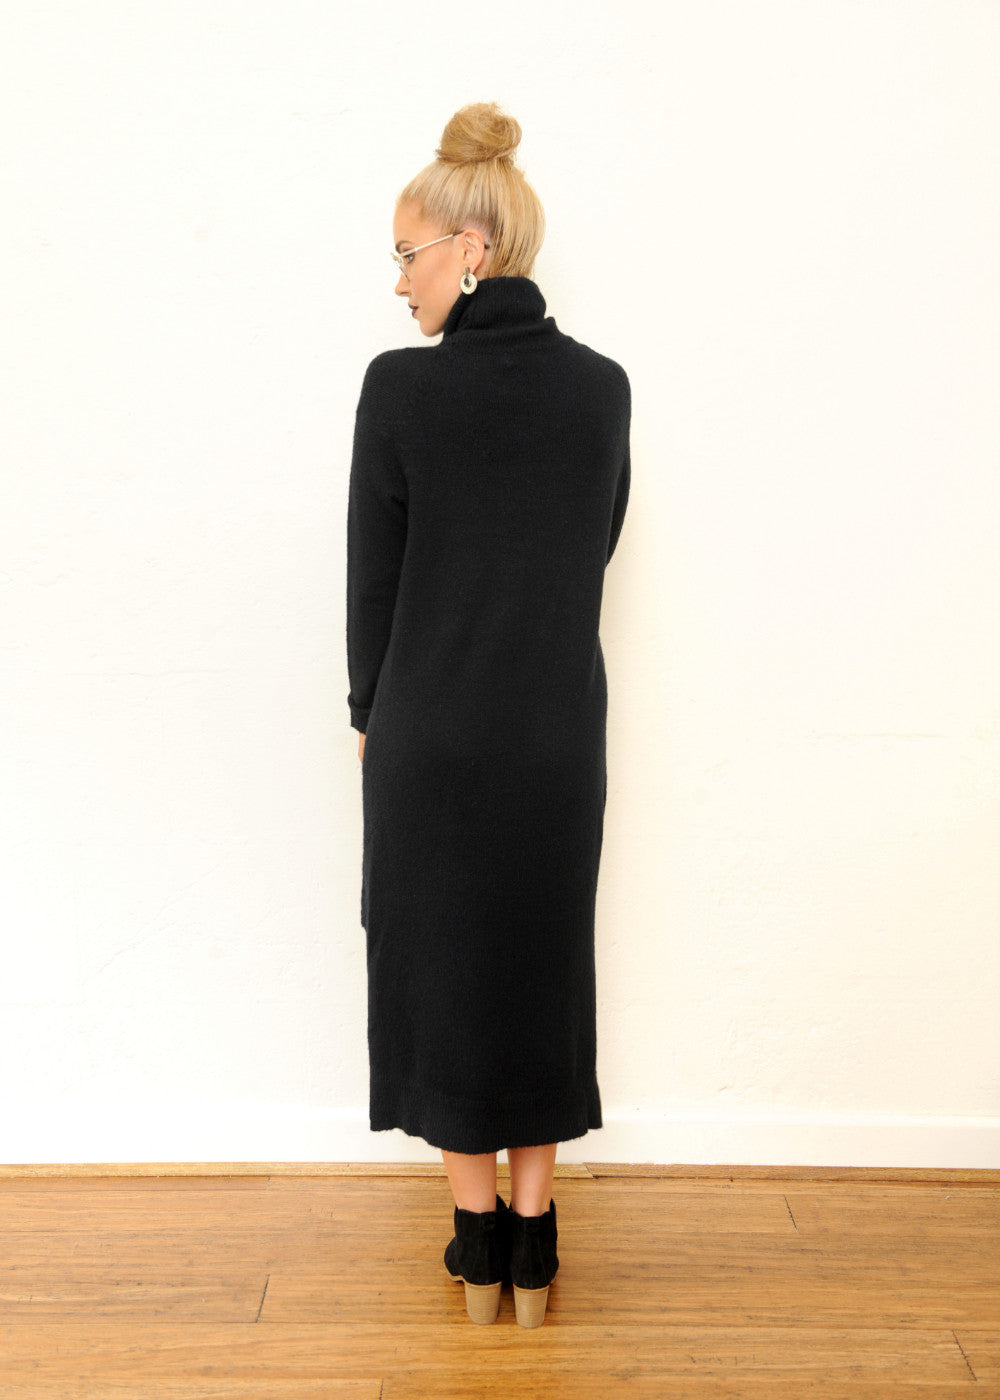 Ash Knit Dress - Black